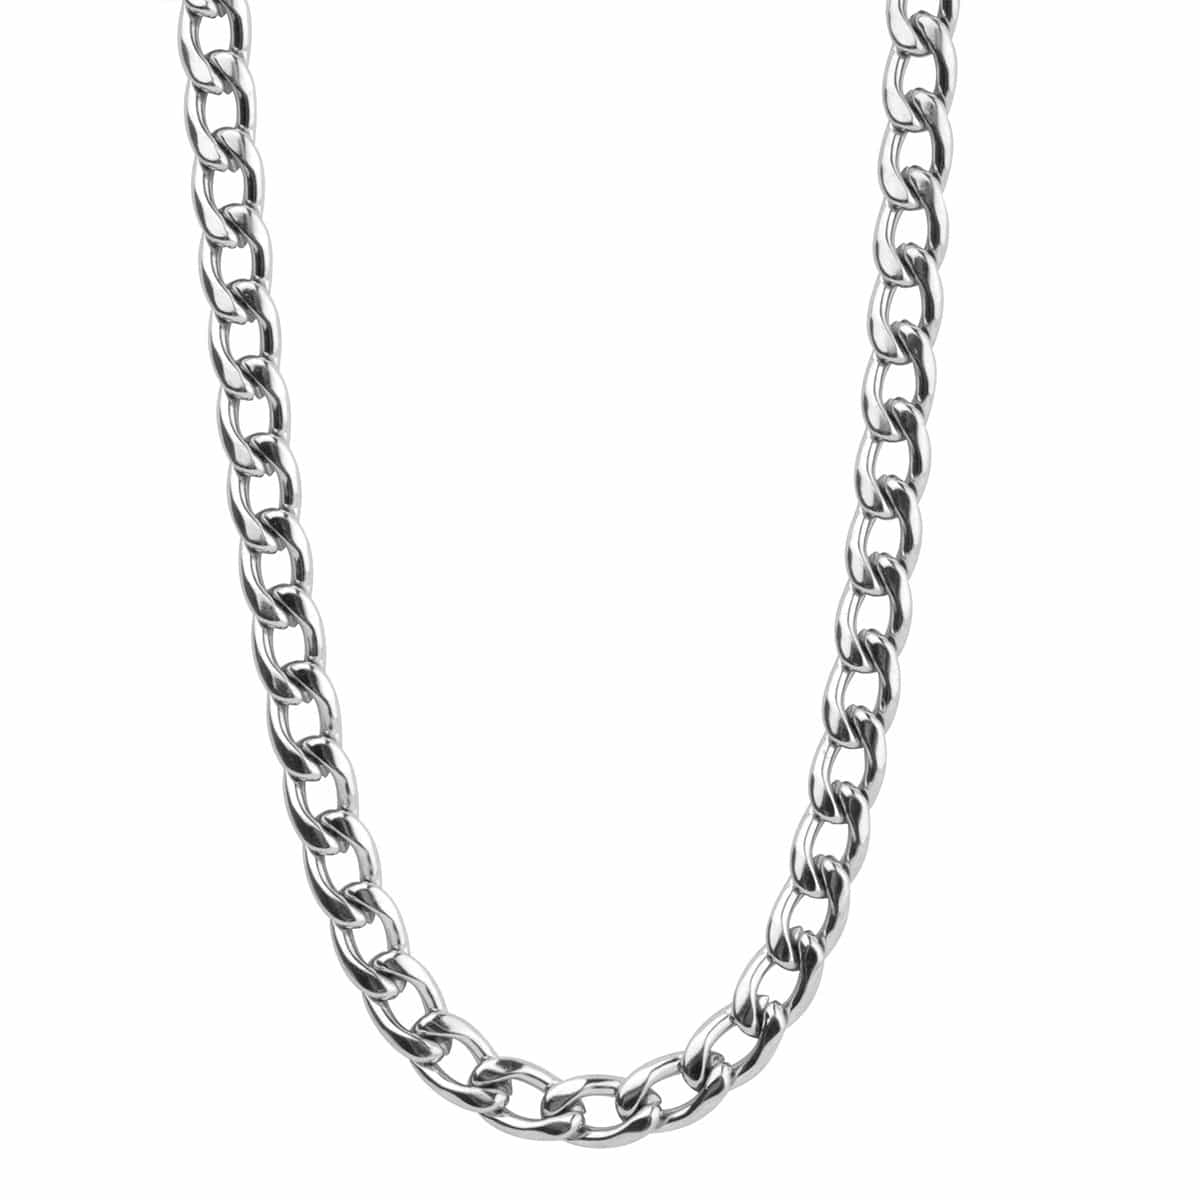 Silver Stainless Steel 8 mm Round Curb Chain Chains